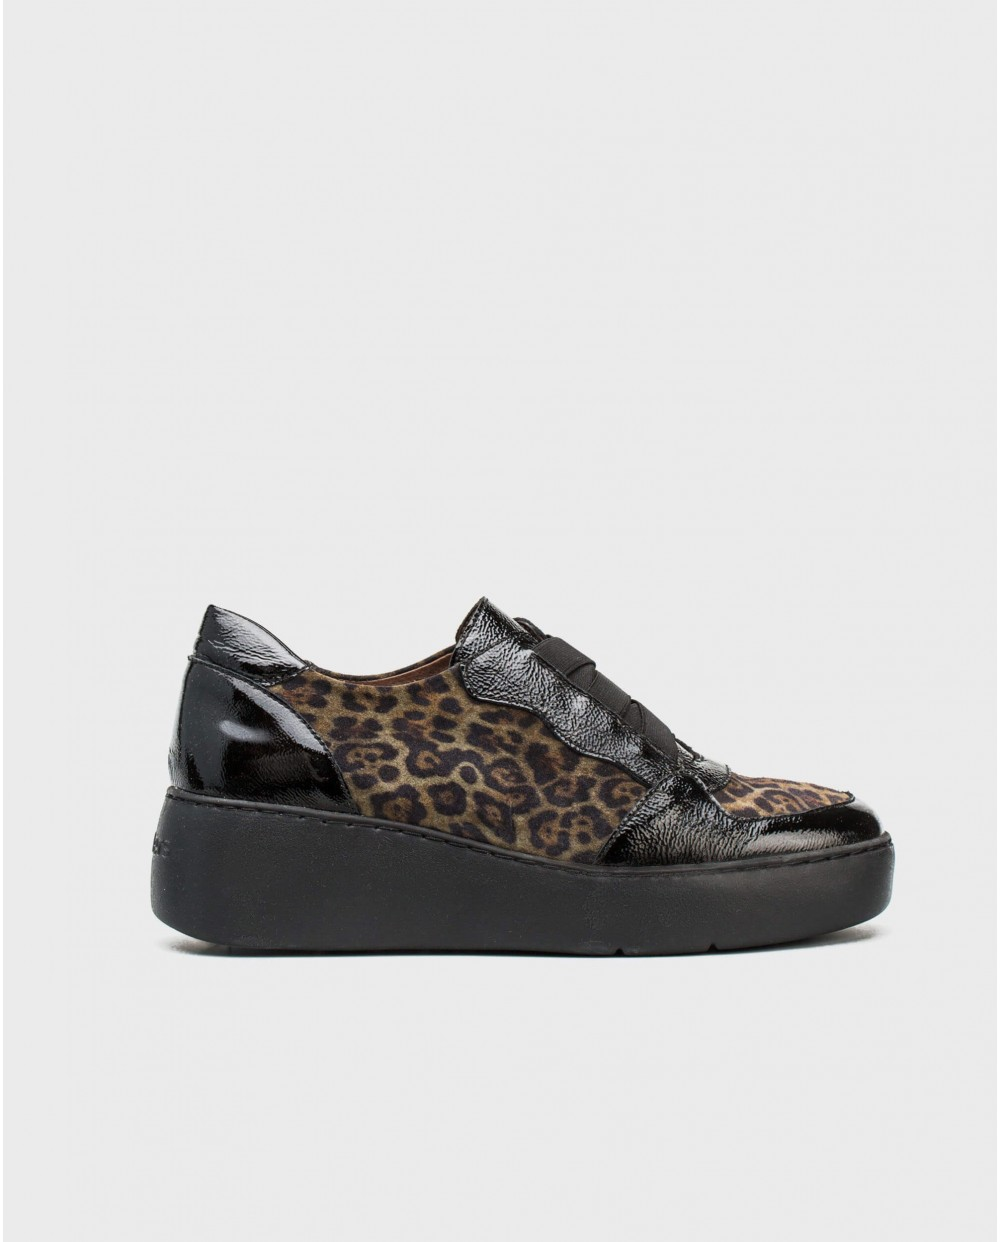 Wonders-Outlet-Leather animal print sneaker